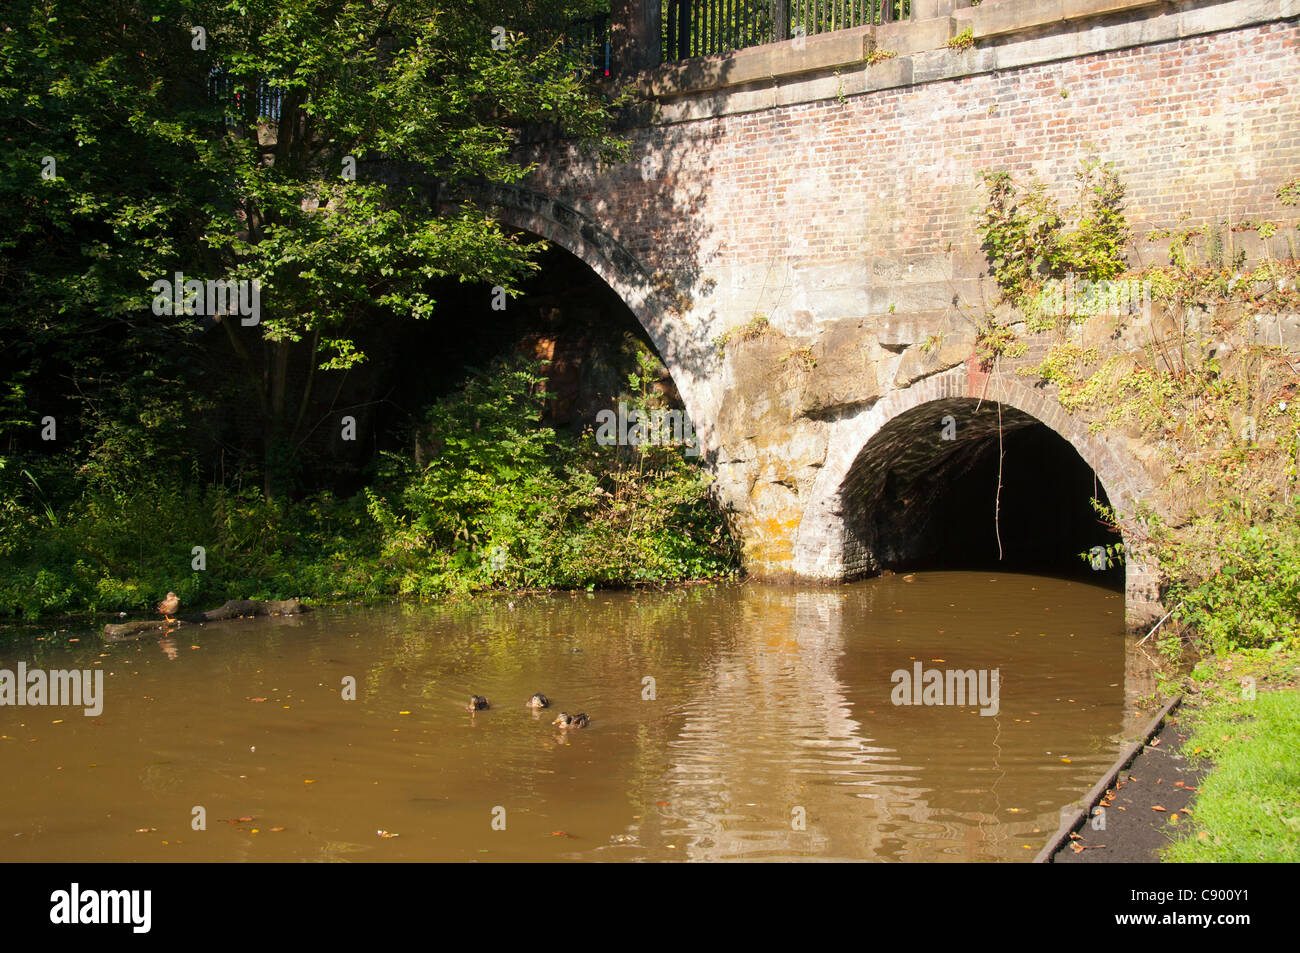 The entrance to the Duke of Bridgewater's coal mines at Worsley Delph, Salford, Manchester, England, UK Stock Photo